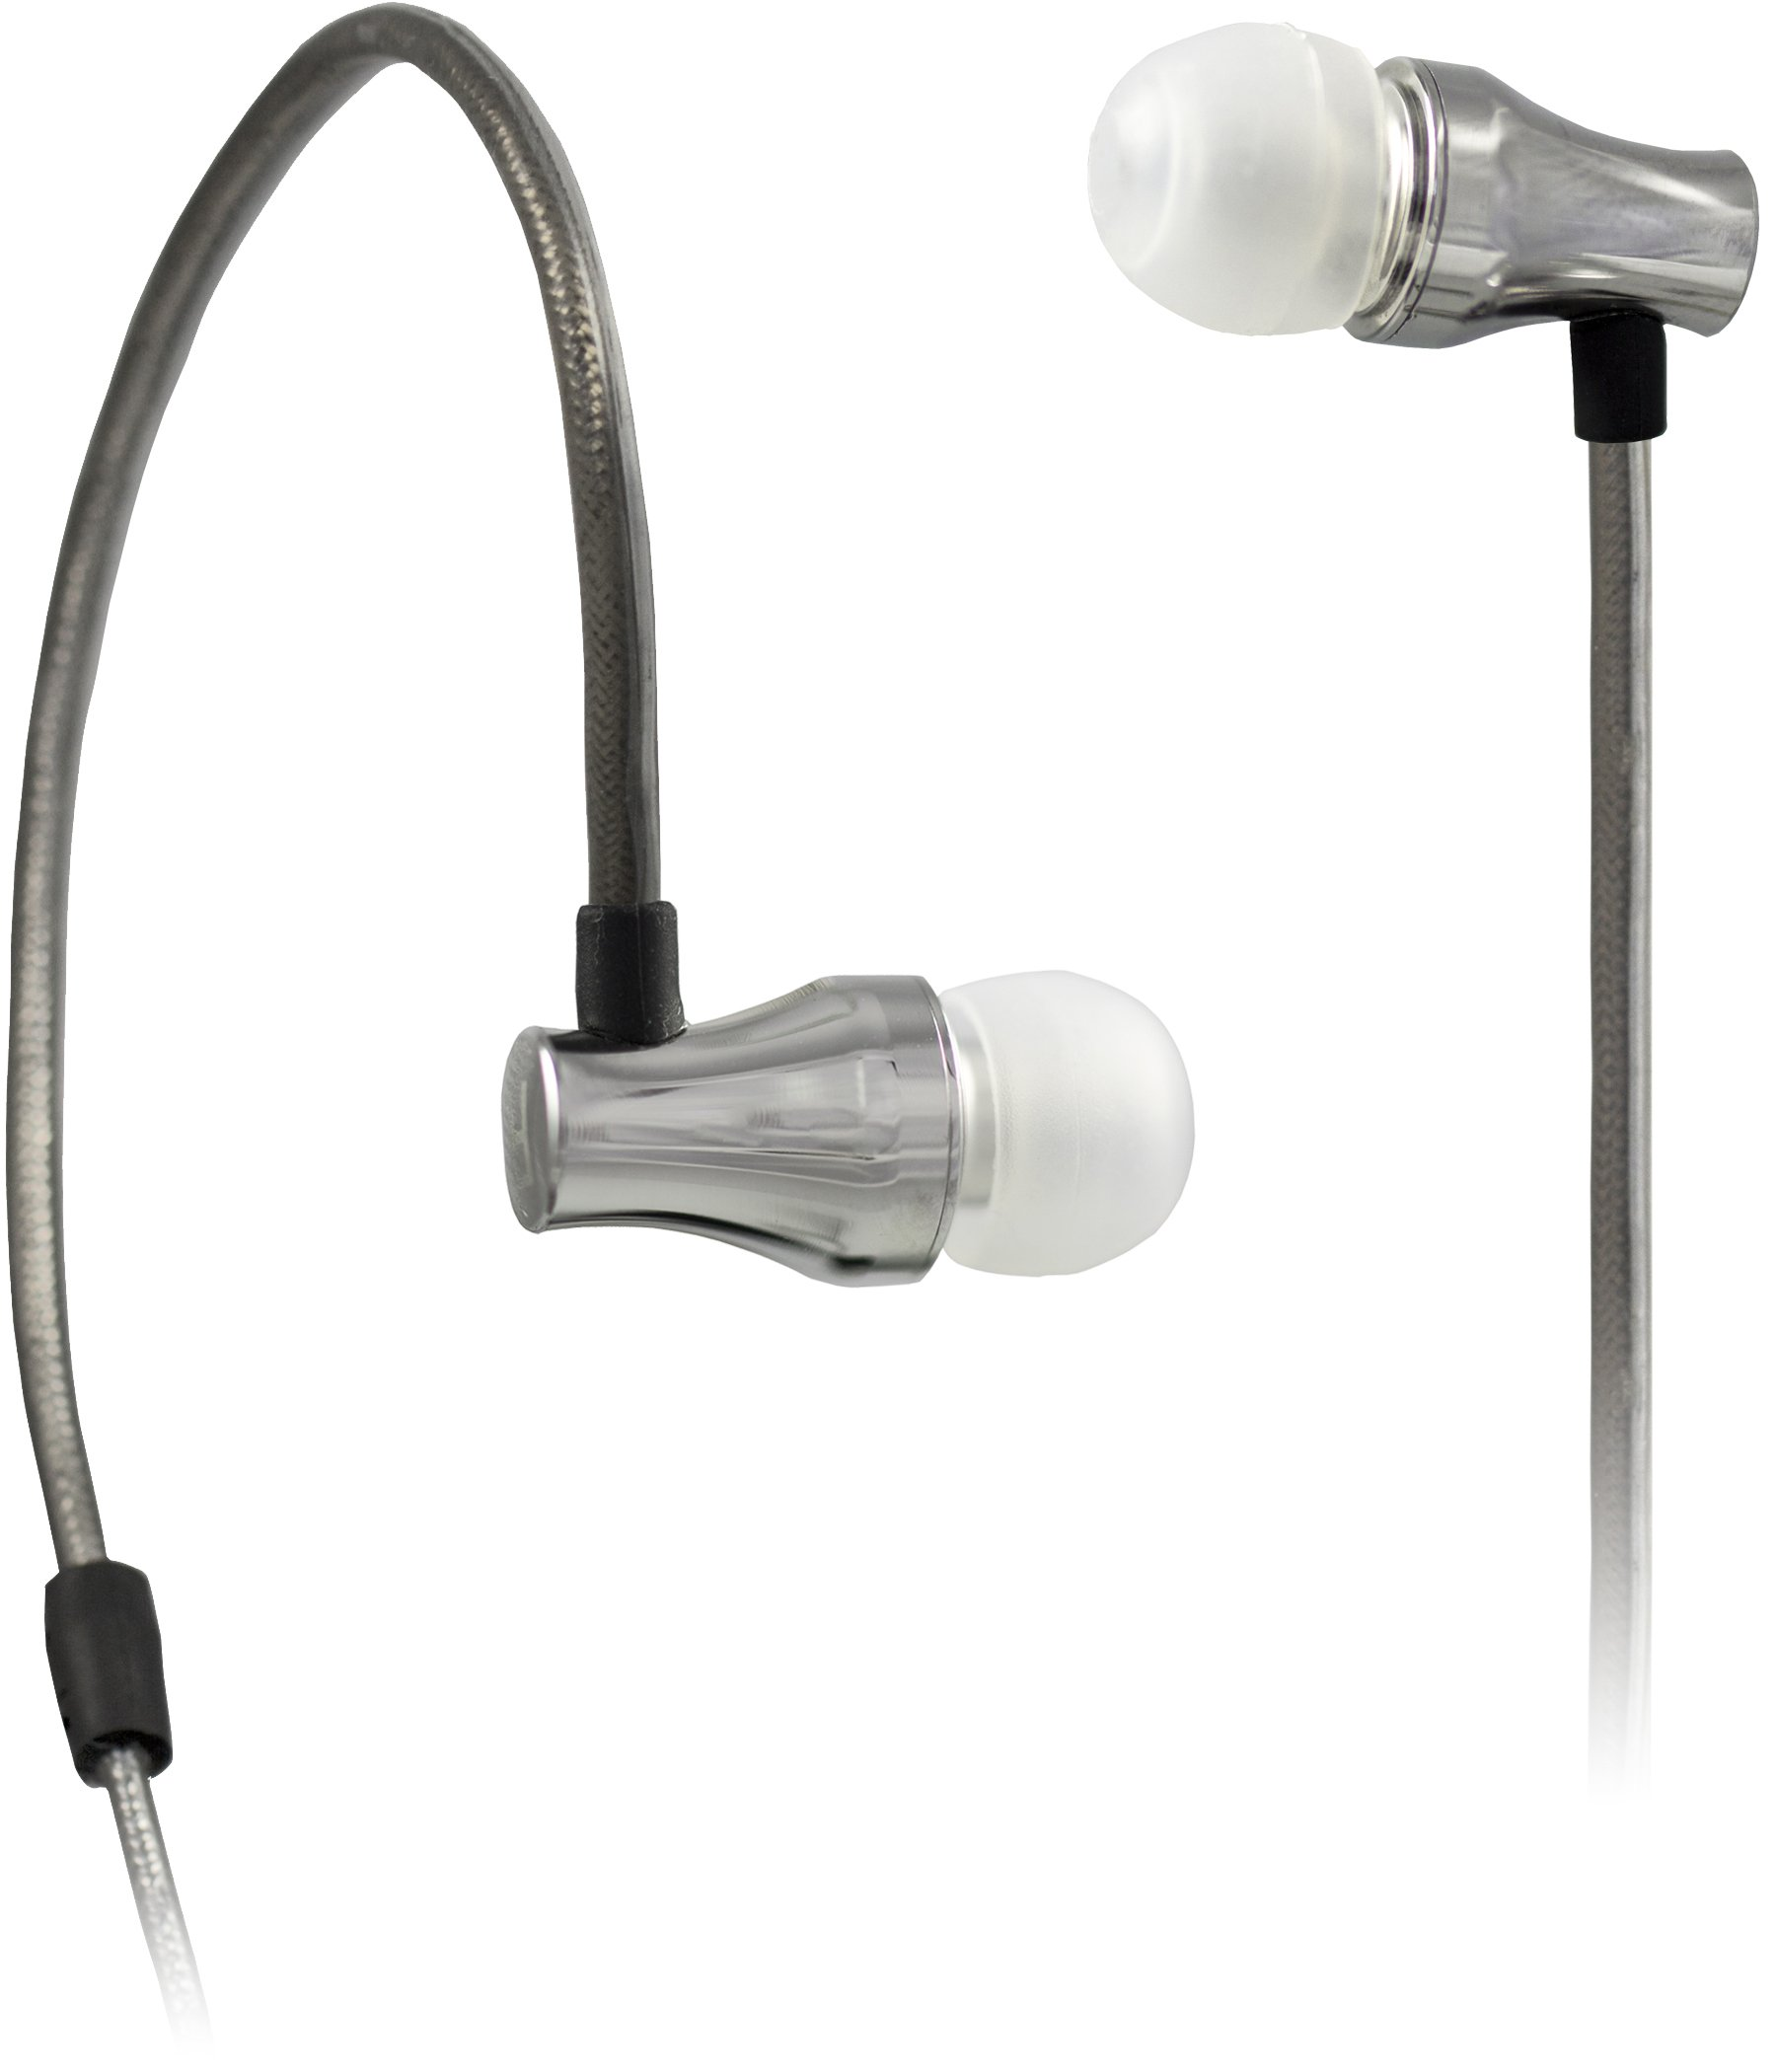 Wi Digital SEBD10 Wi Sure-Ears Professional Noise-Isolating In-Ear Monitors Optimized for Bass Drums and Keyboards - Polished Silver Brass by Wi Digital